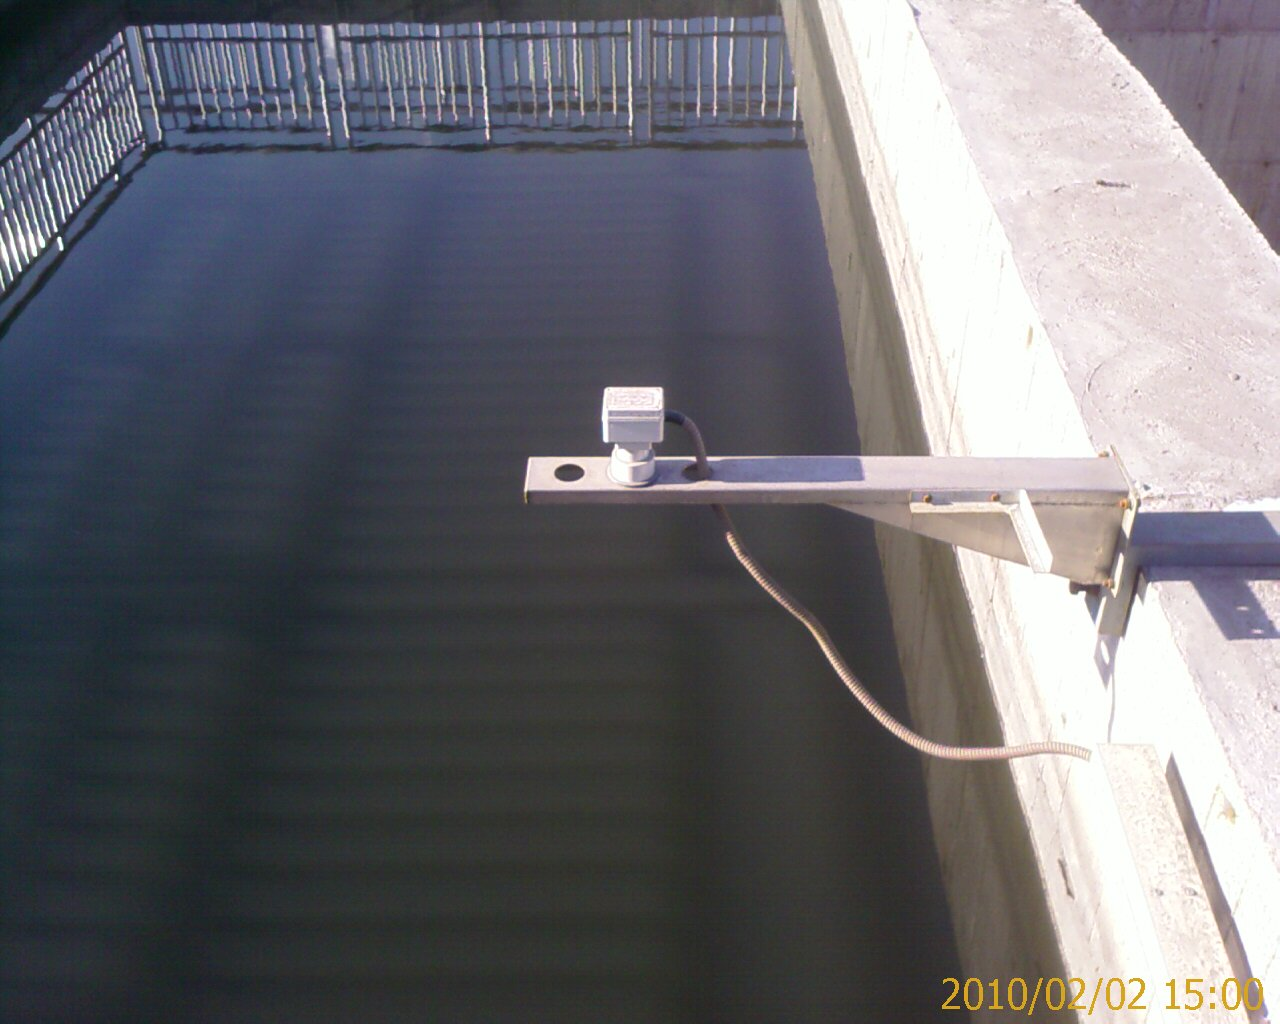 Non-contact ultrasonic flow sensor